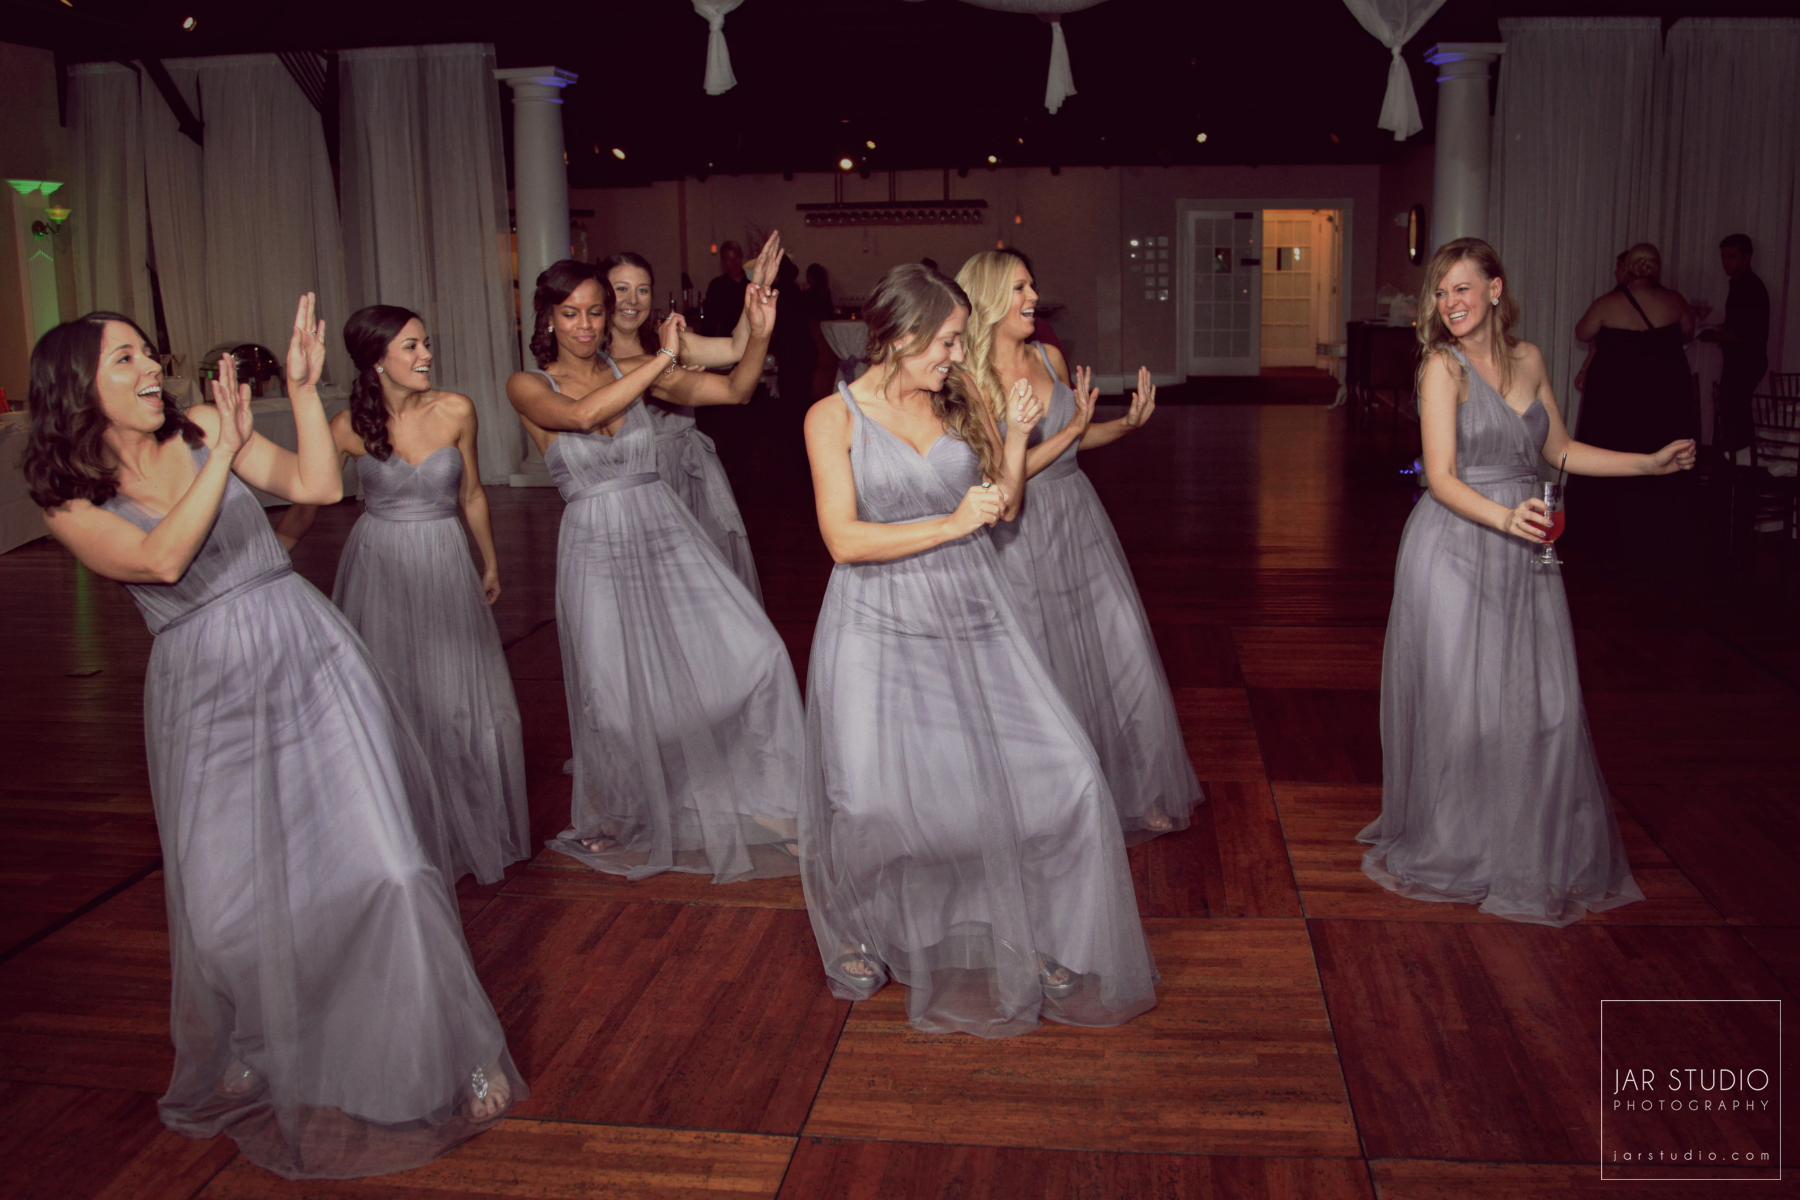 31-bridesmaids-gray-dresses-jarstudio-photography.JPG